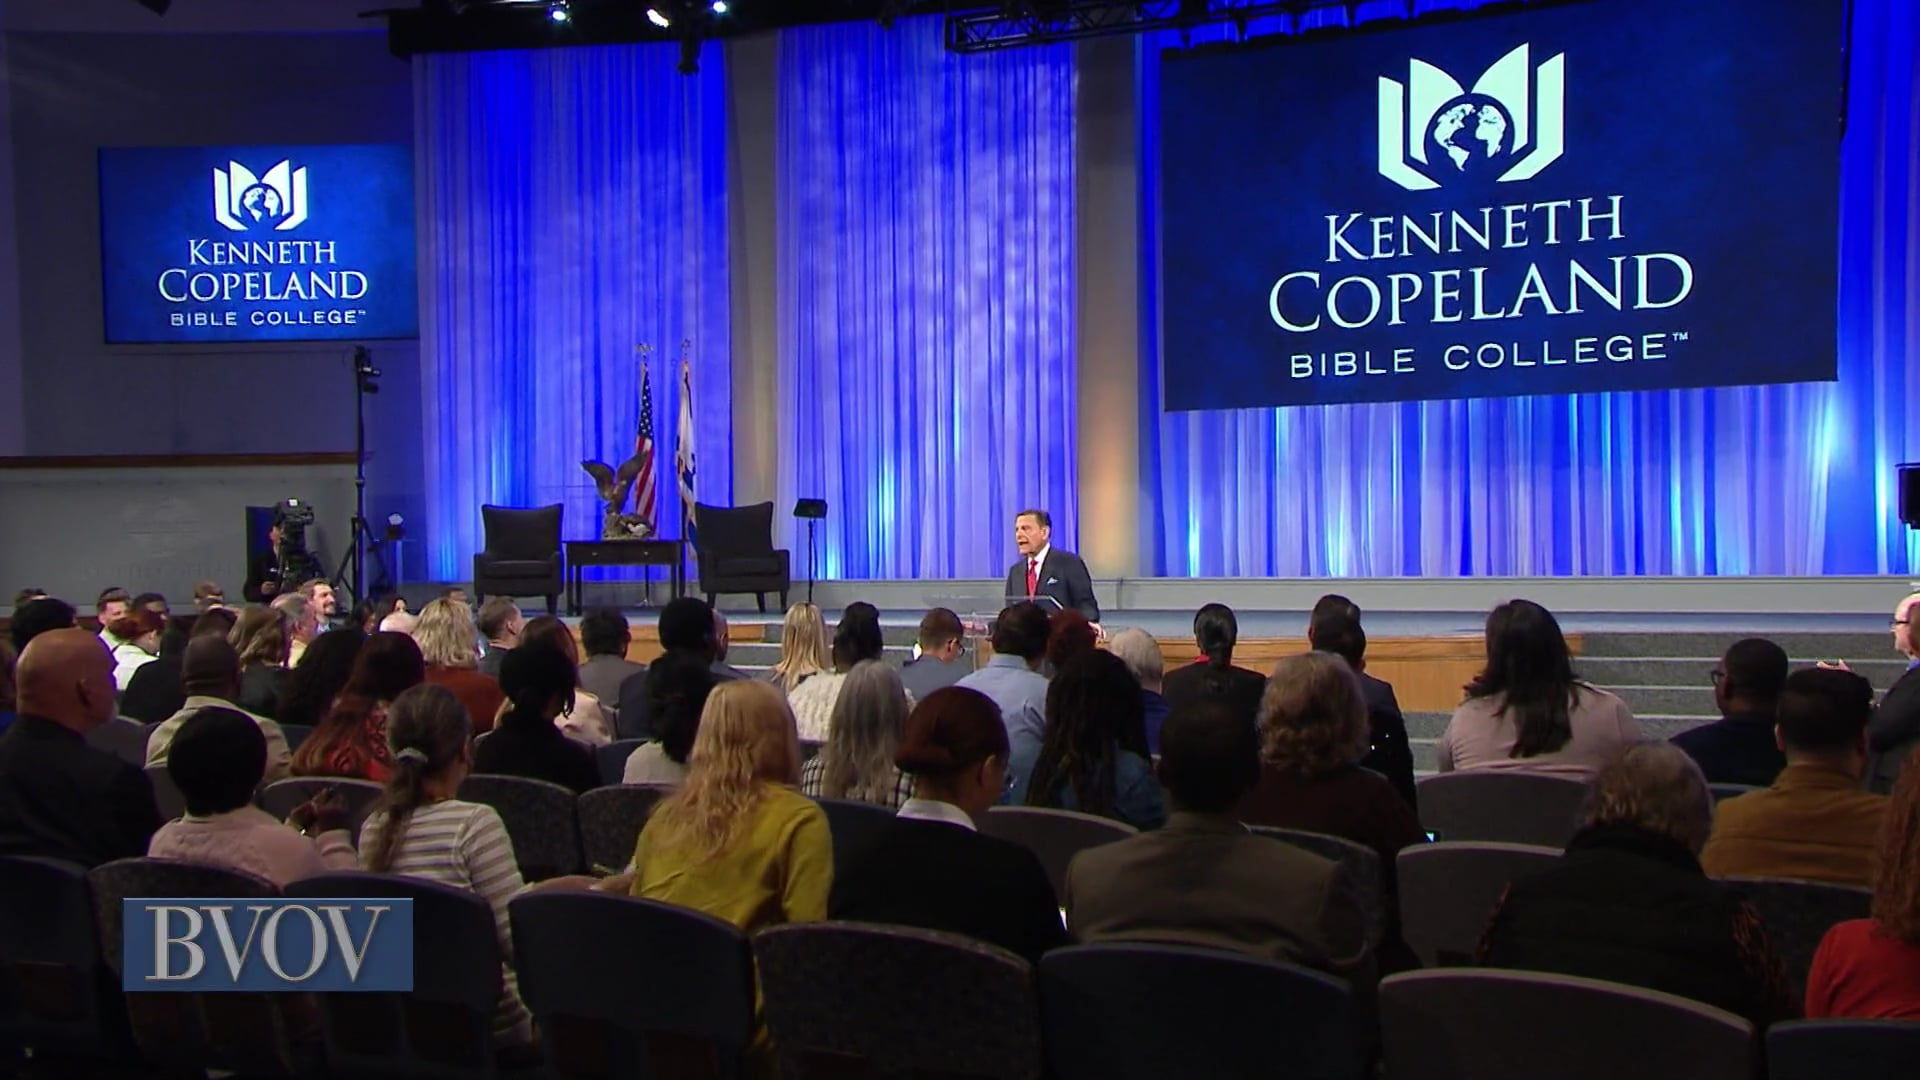 Are you taking time to rest? Join Kenneth Copeland on Believer's Voice of Victory as he shares the importance of learning to rest in the goodness of God while allowing your spirit, soul and body a time of refreshing. When you take time to rest, you're not only obeying God, but you're also doing yourself a world of good!